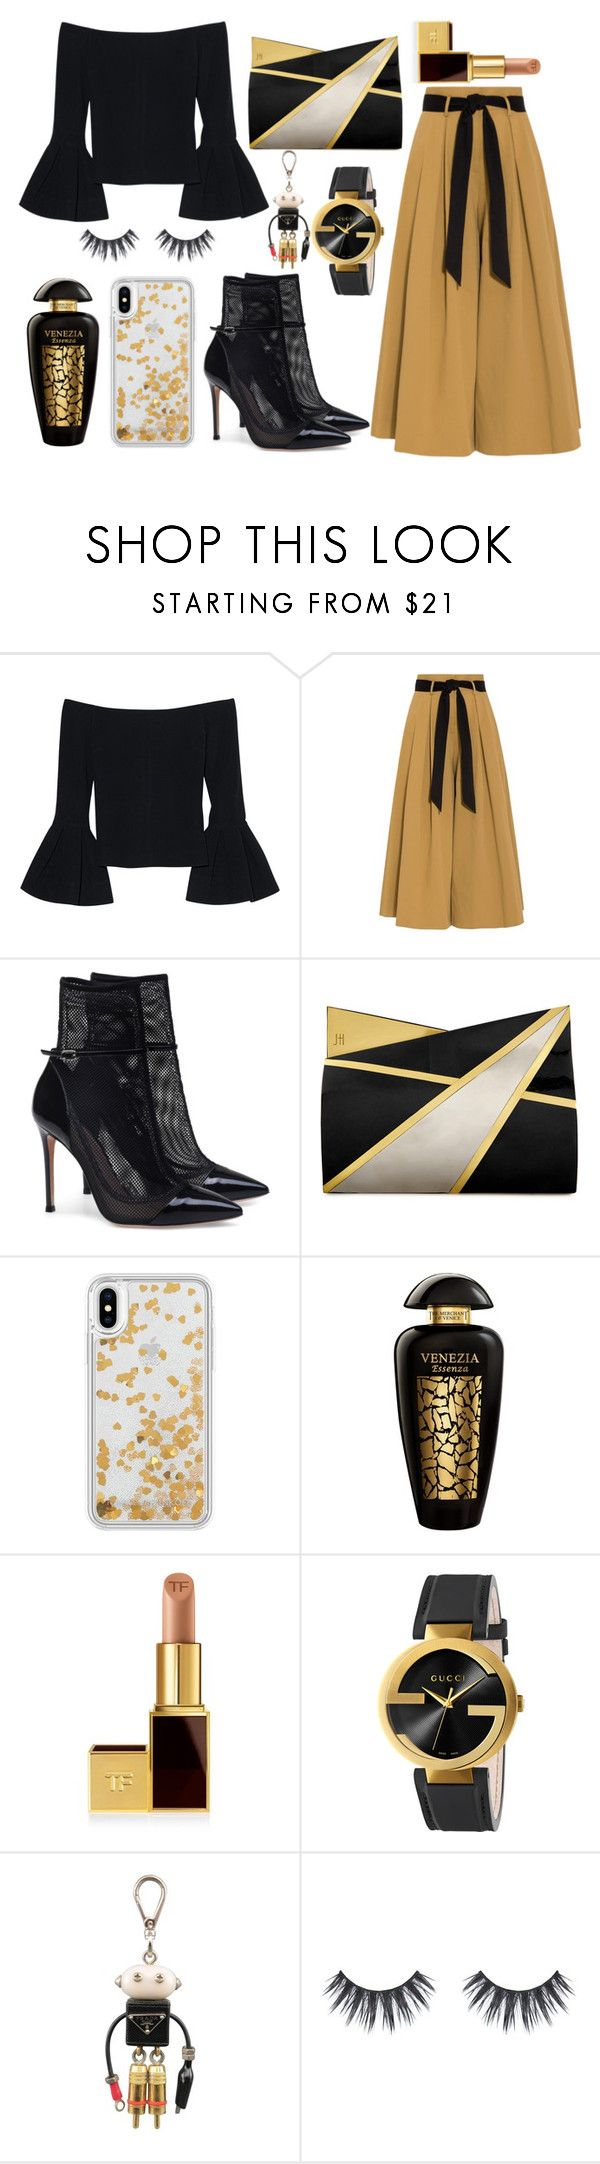 """""""Untitled #20"""" by leamehaj ❤ liked on Polyvore featuring Alexis, Temperley London, Jill Haber, Rebecca Minkoff, The Merchant Of Venice, Tom Ford, Gucci and Prada"""